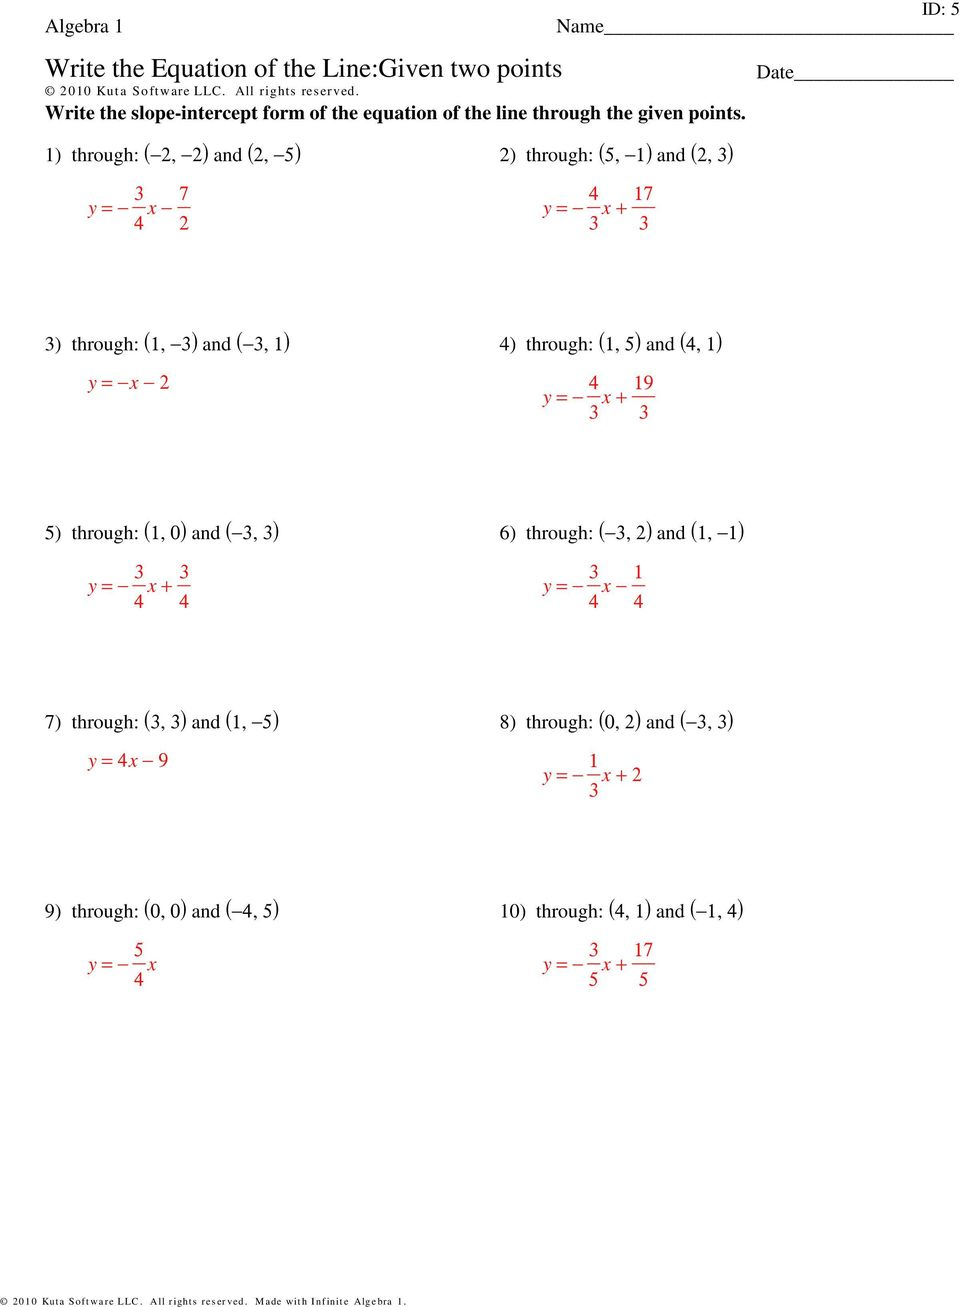 Write The Equation Of The Line:given Two Points - Pdf Free